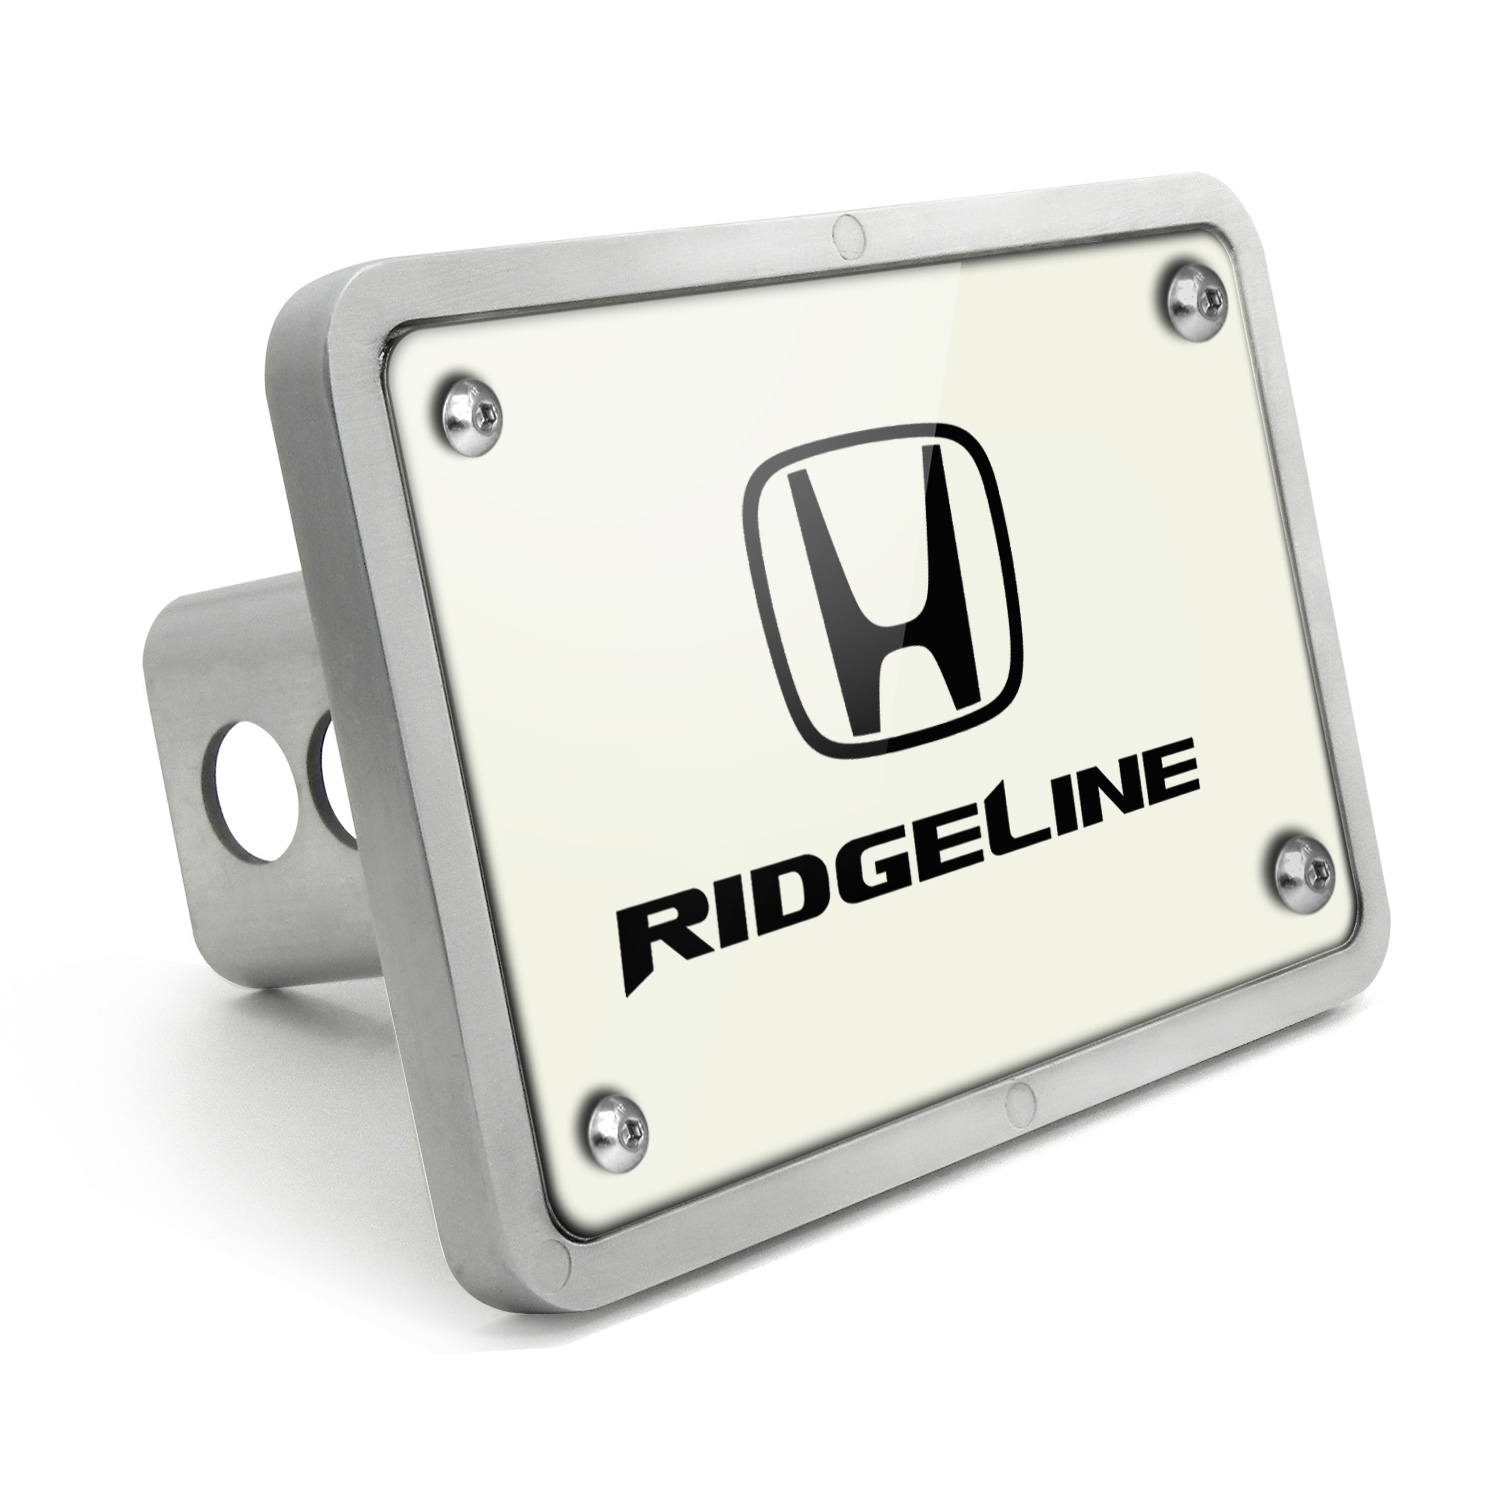 Honda Ridgeline UV Graphic White Billet Aluminum 2 inch Tow Hitch Cover